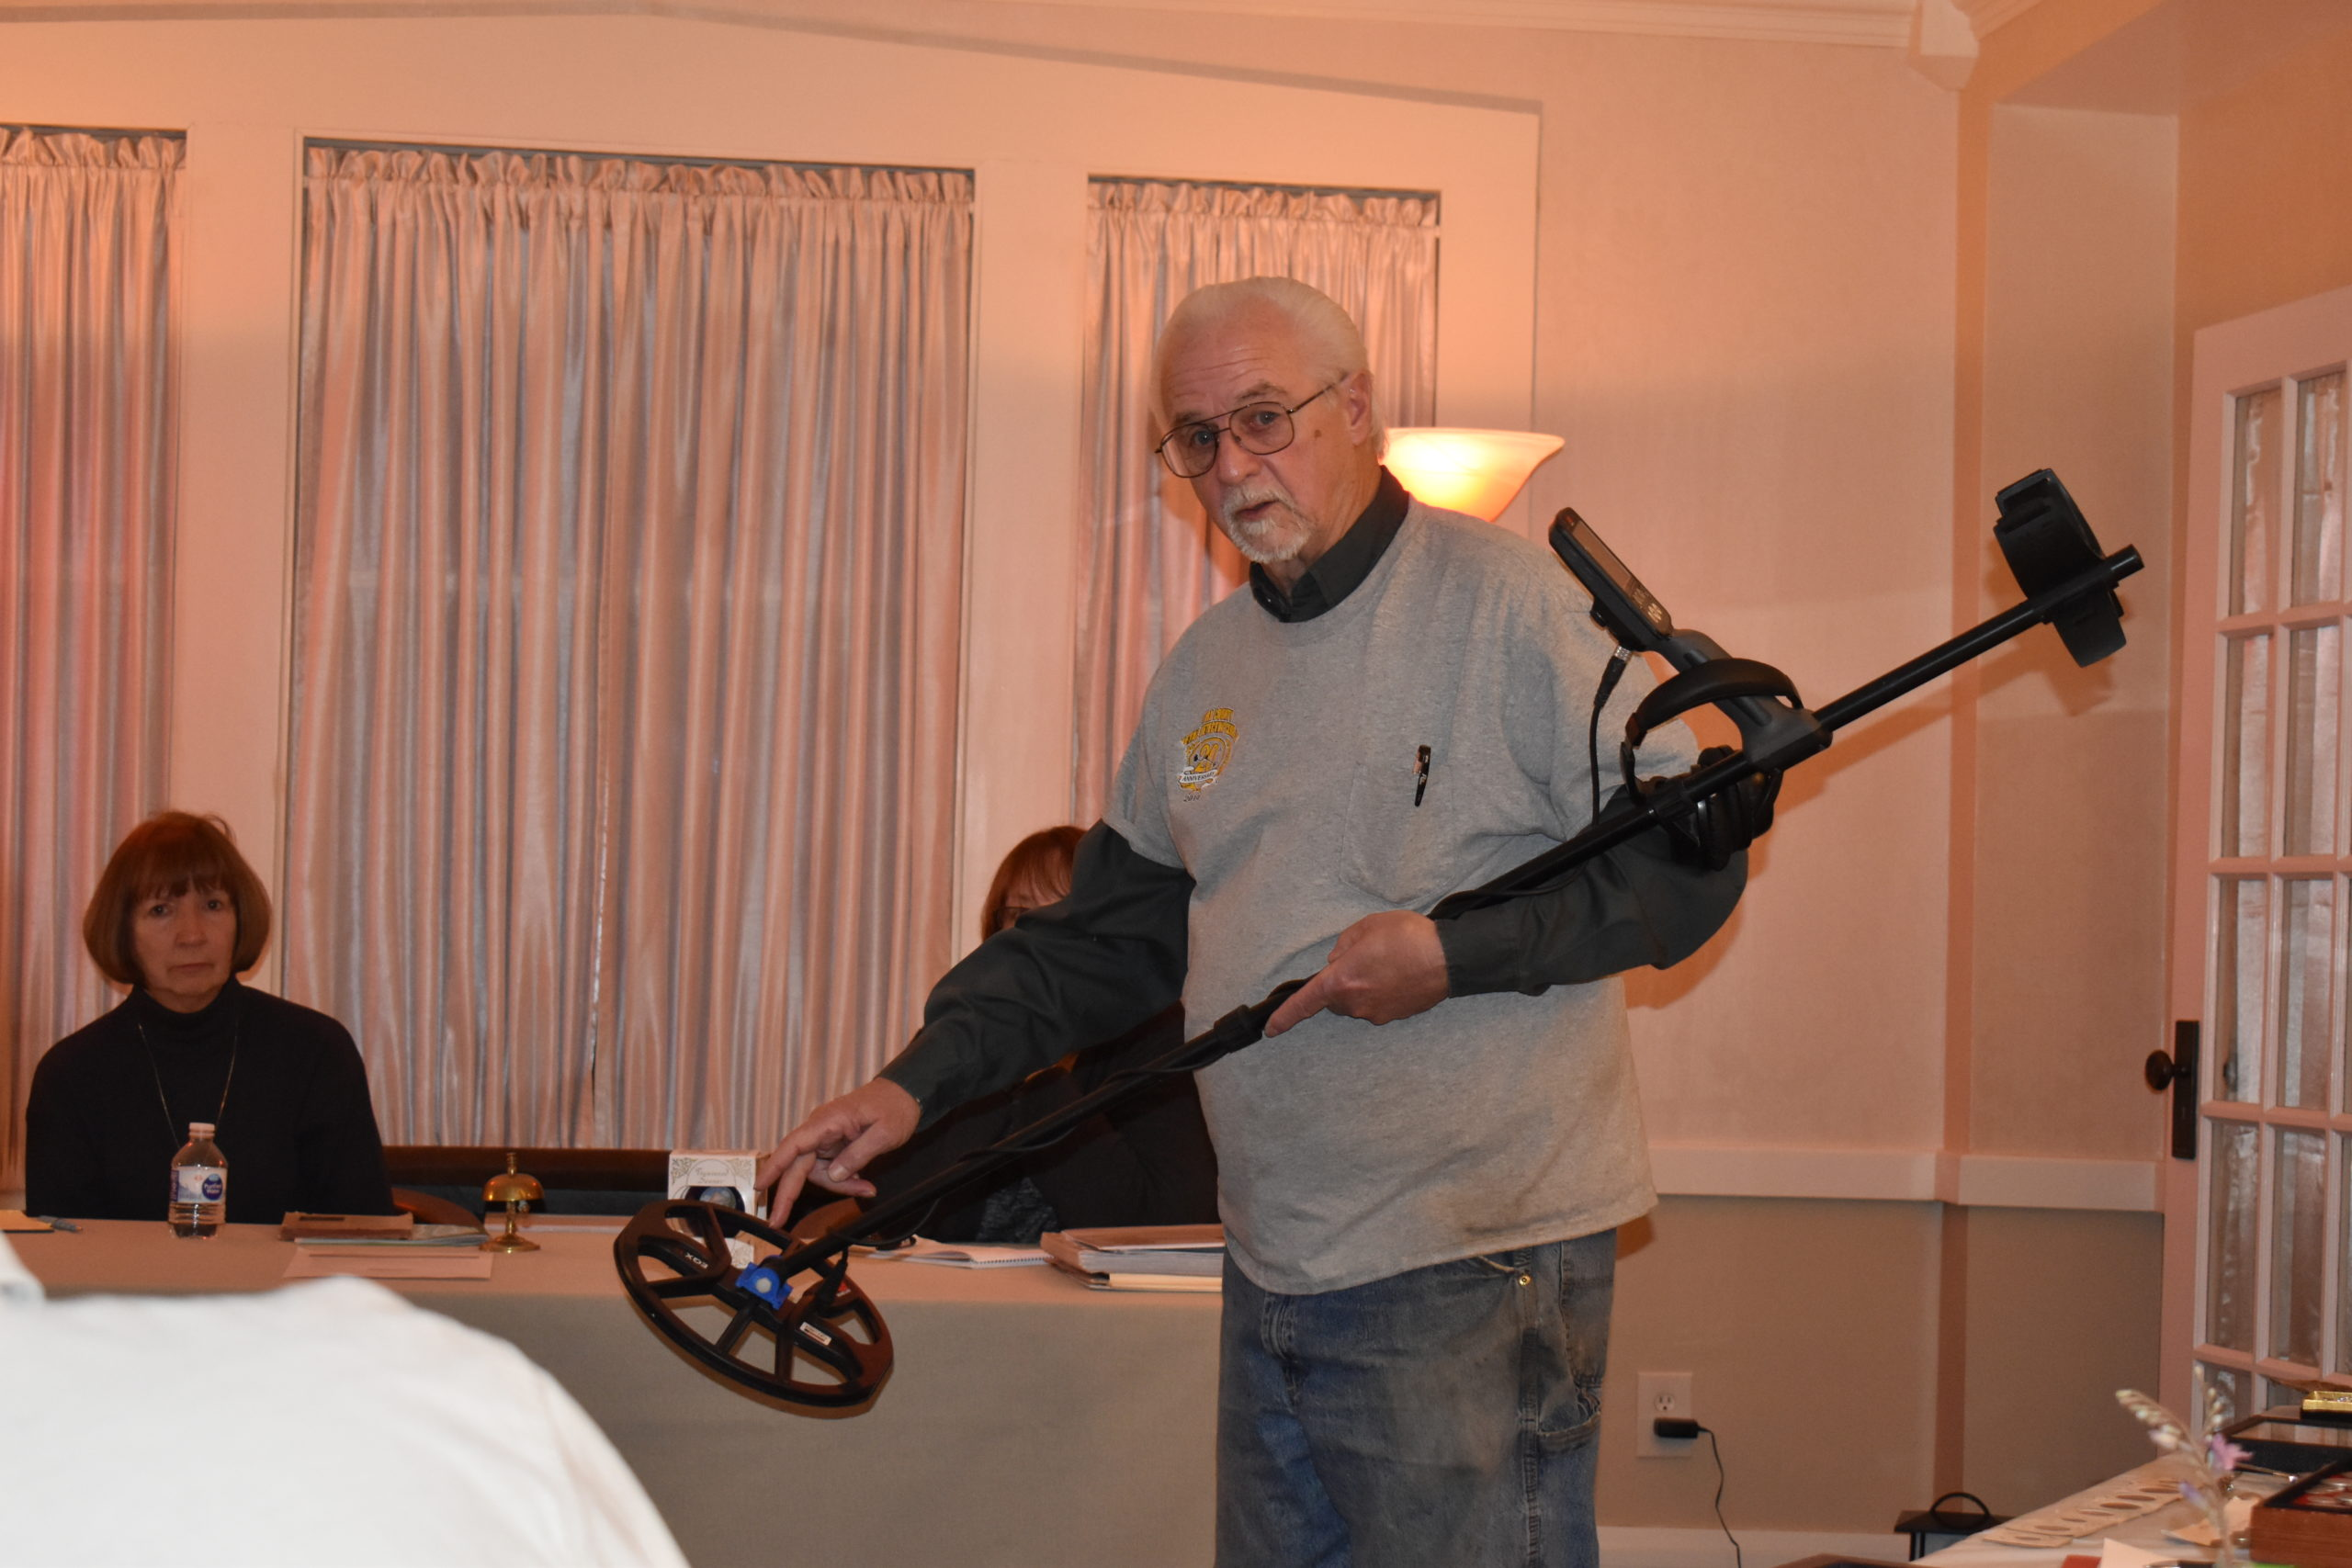 Jesse James shows how a metal detector works at the Feb. 13 meeting of the Brookfield Historical Society.